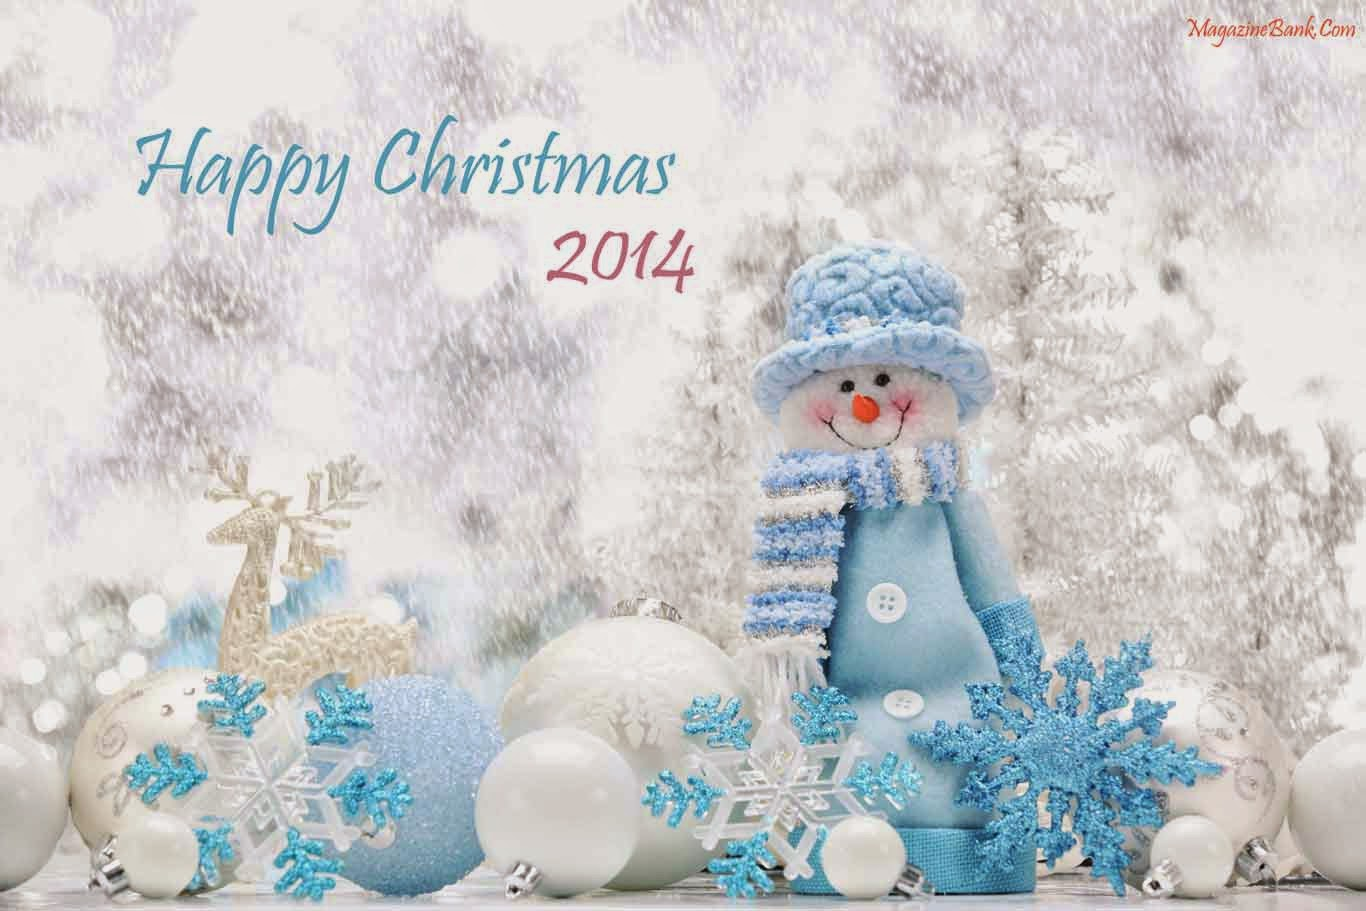 Happy Merry Christmas 2014 HD Wallpapers